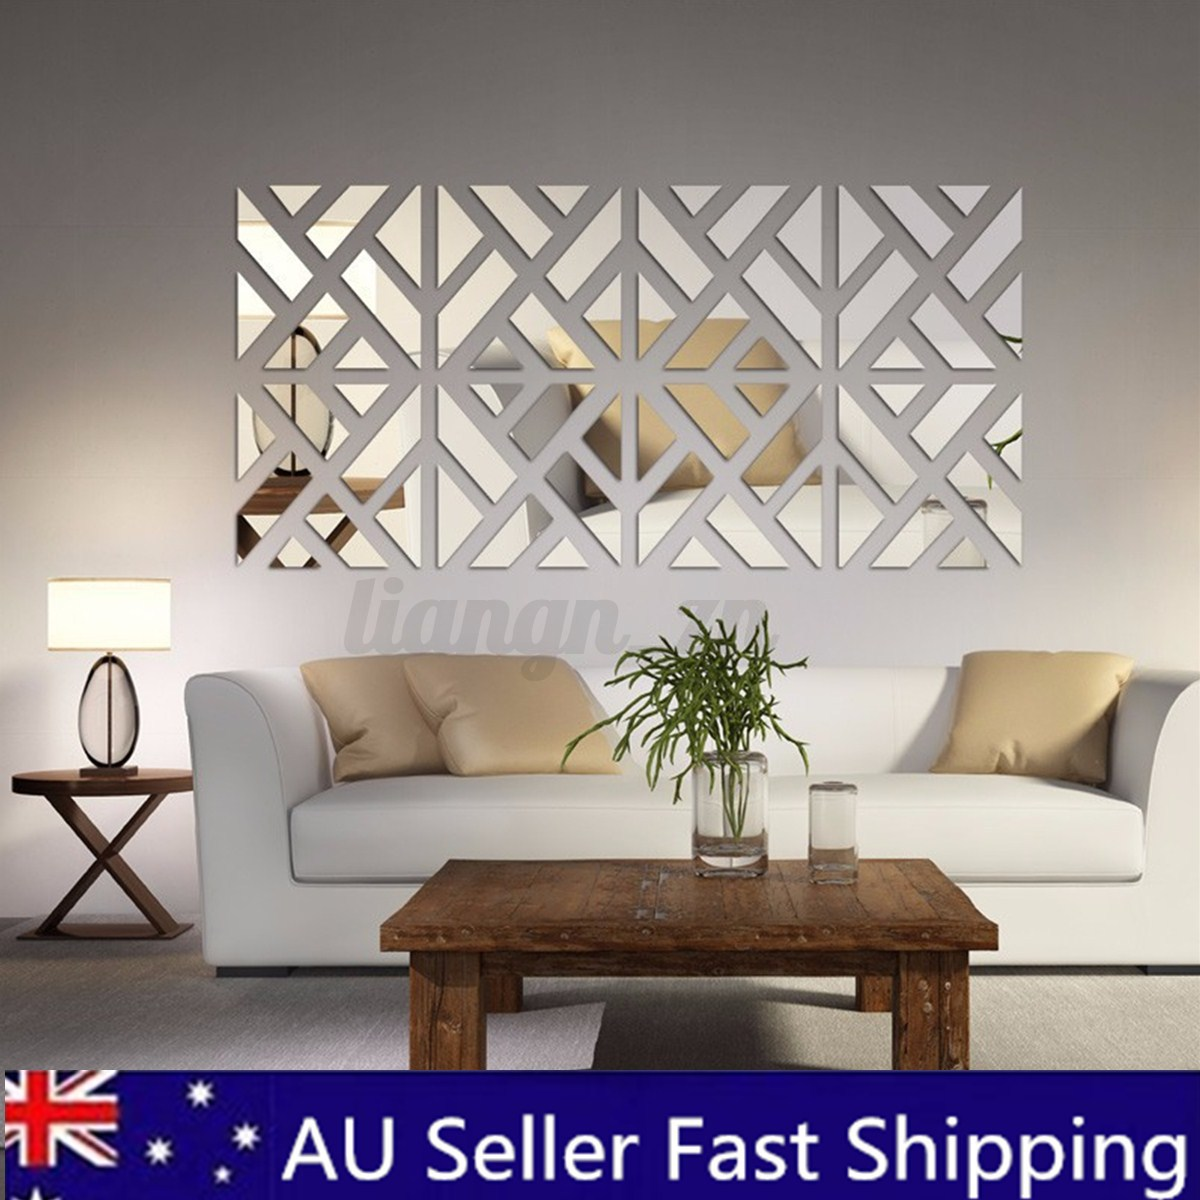 3d removable 32pcs mirror acrylic wall sticker diy art vinyl decal home decor ebay - Wall decor mirror home accents ...